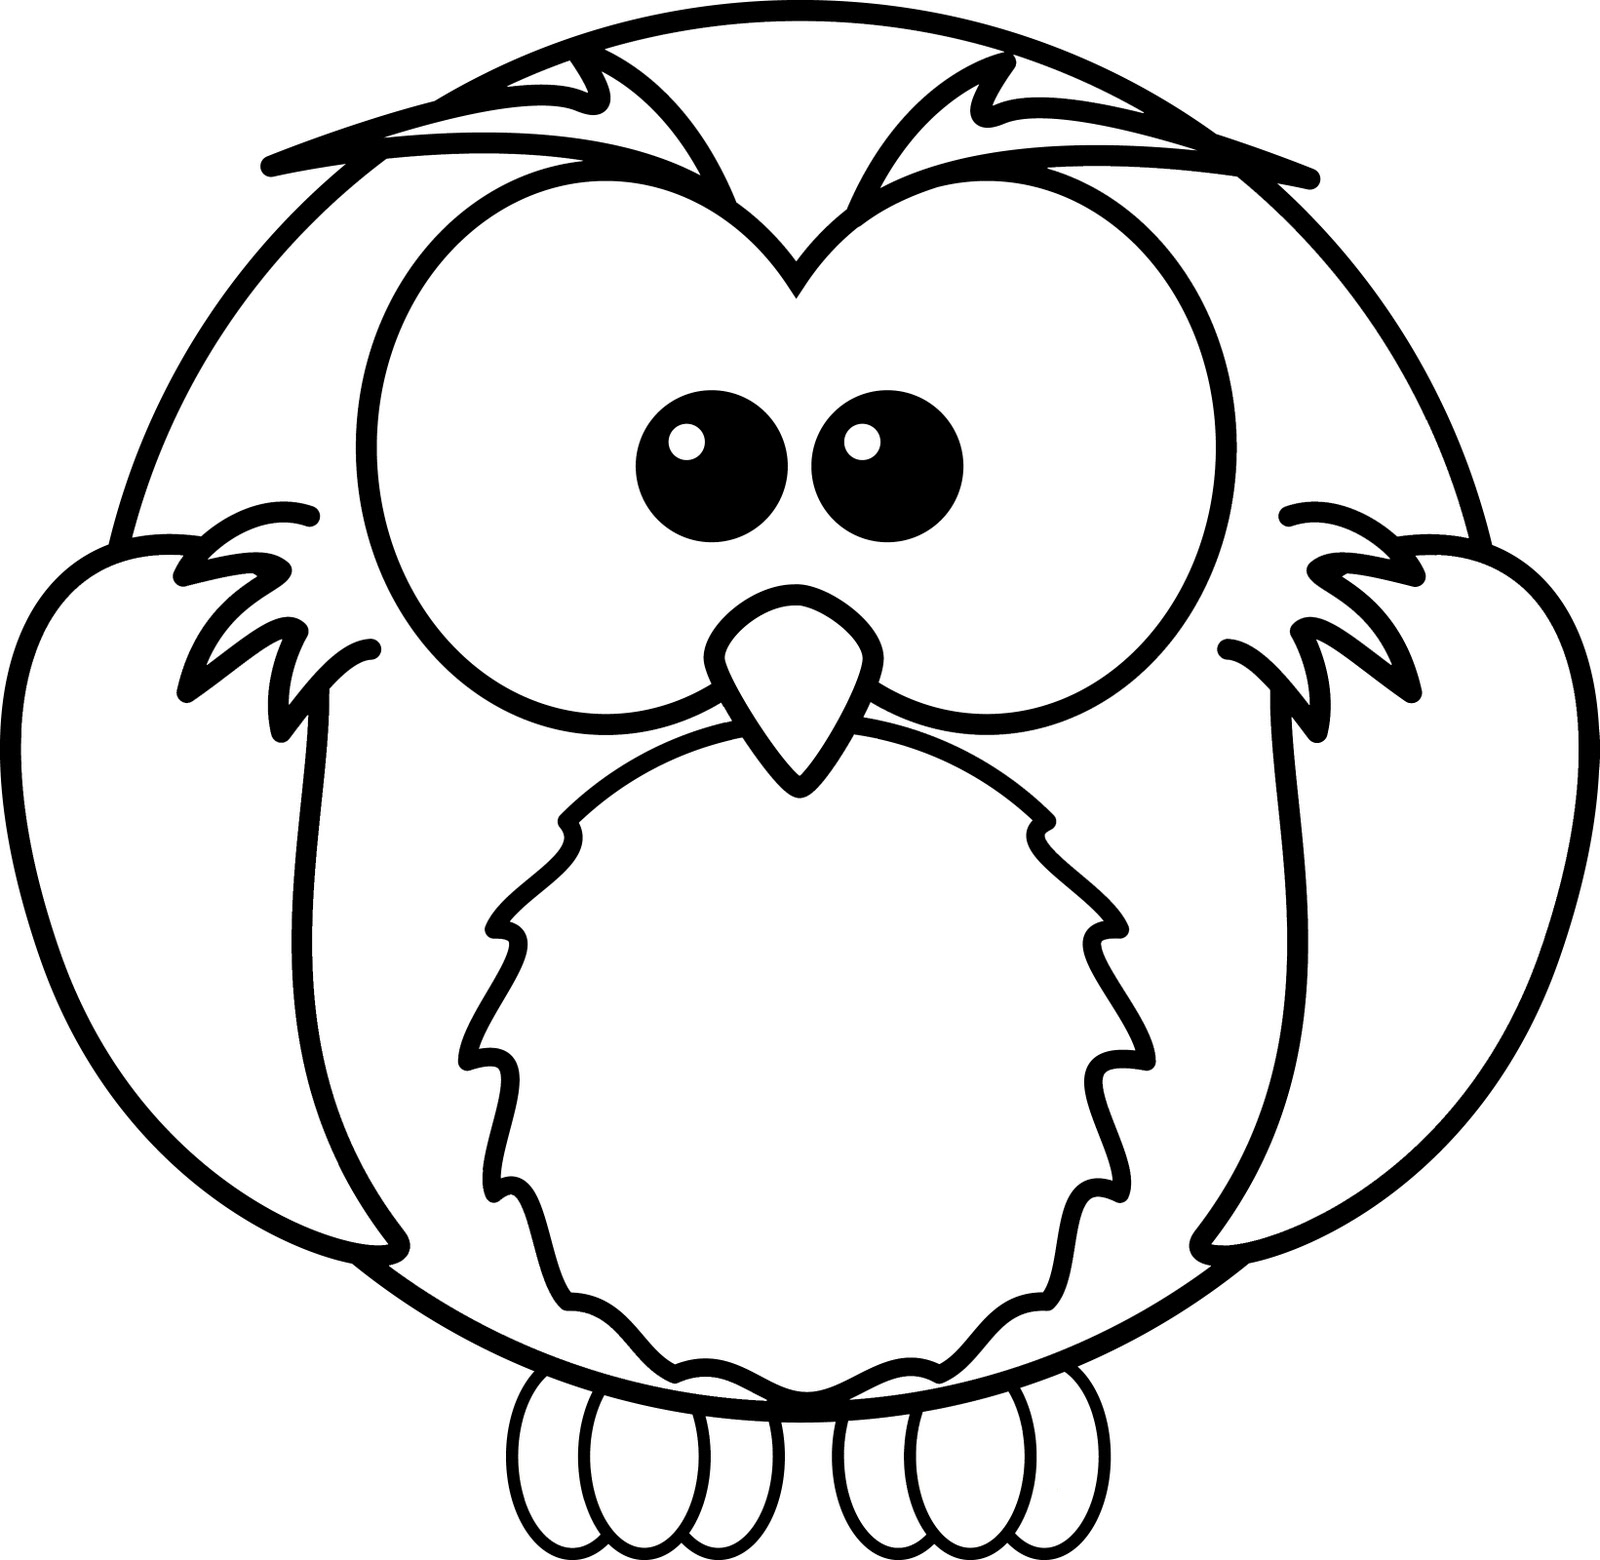 print owl pictures printable owl picture owl printable coloring pages pictures owl print